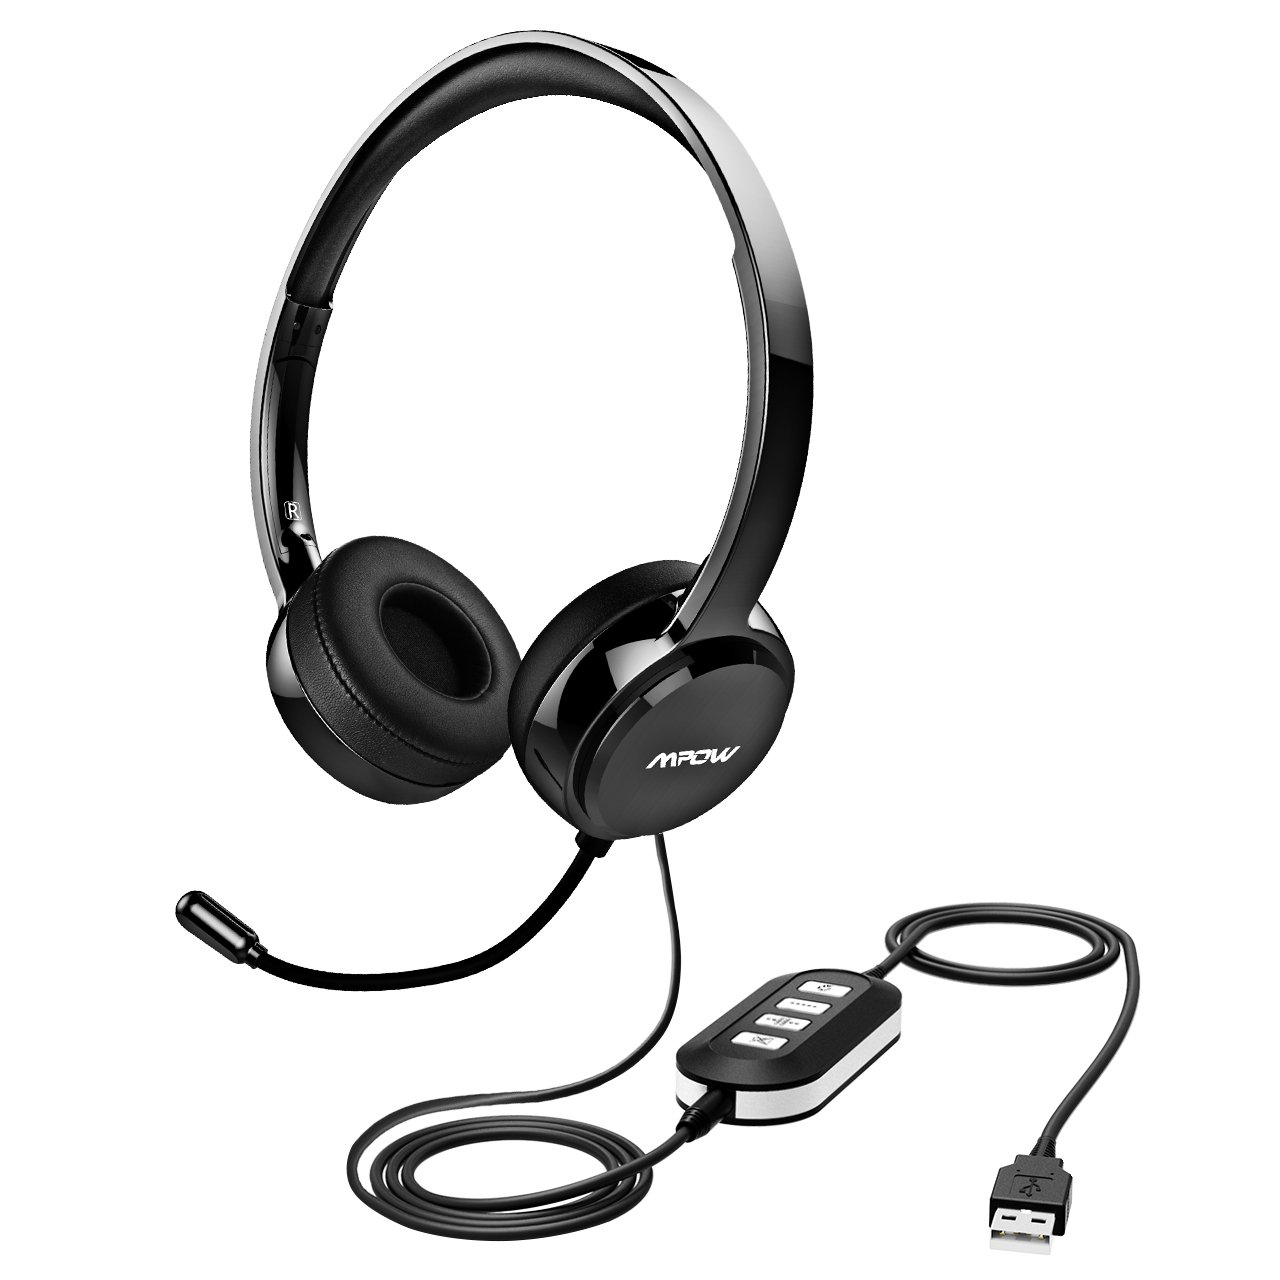 Mpow 071 USB Headset/ 3 5mm Computer Headset with Microphone Noise  Cancelling, Lightweight PC Headset Wired Headphones, Business Headset for  Skype,